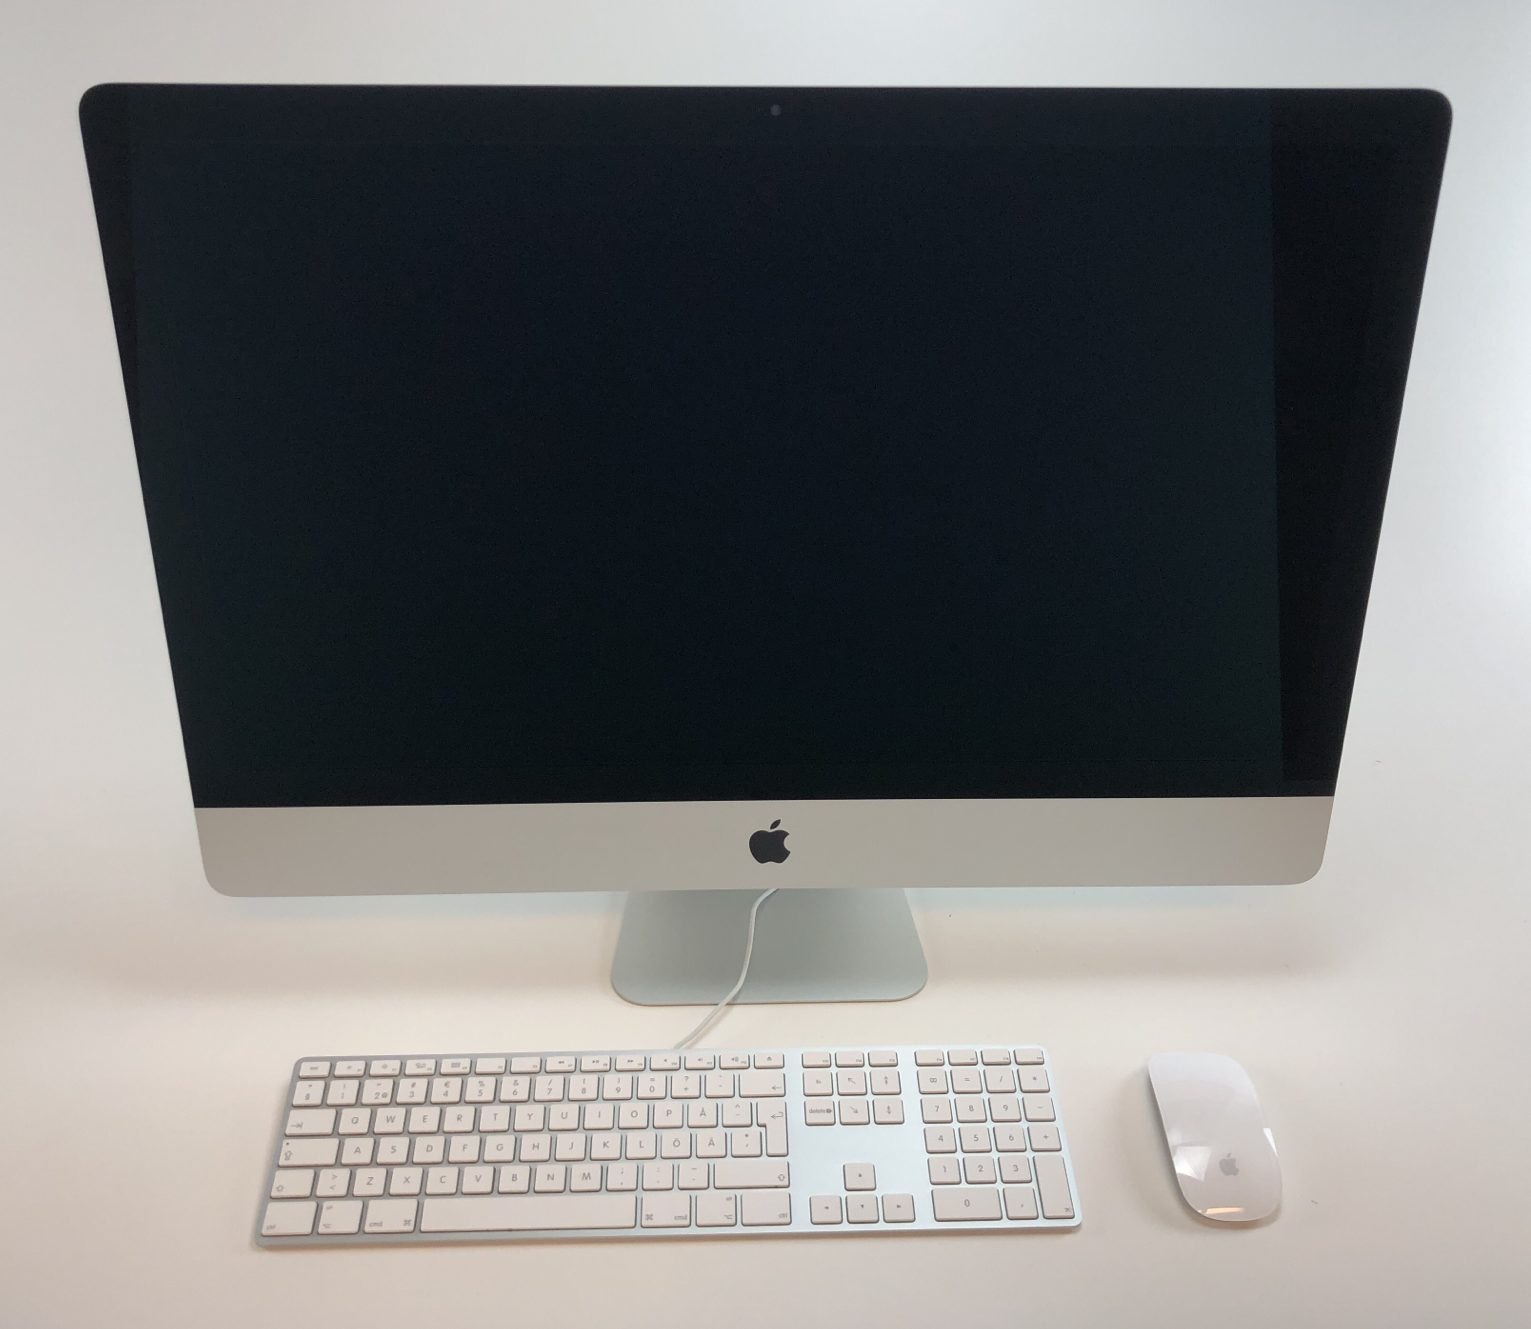 "iMac 27"" Late 2013 (Intel Quad-Core i5 3.4 GHz 32 GB RAM 512 GB SSD), Intel Quad-Core i5 3.4 GHz, 32 GB RAM, 512 GB SSD, obraz 1"